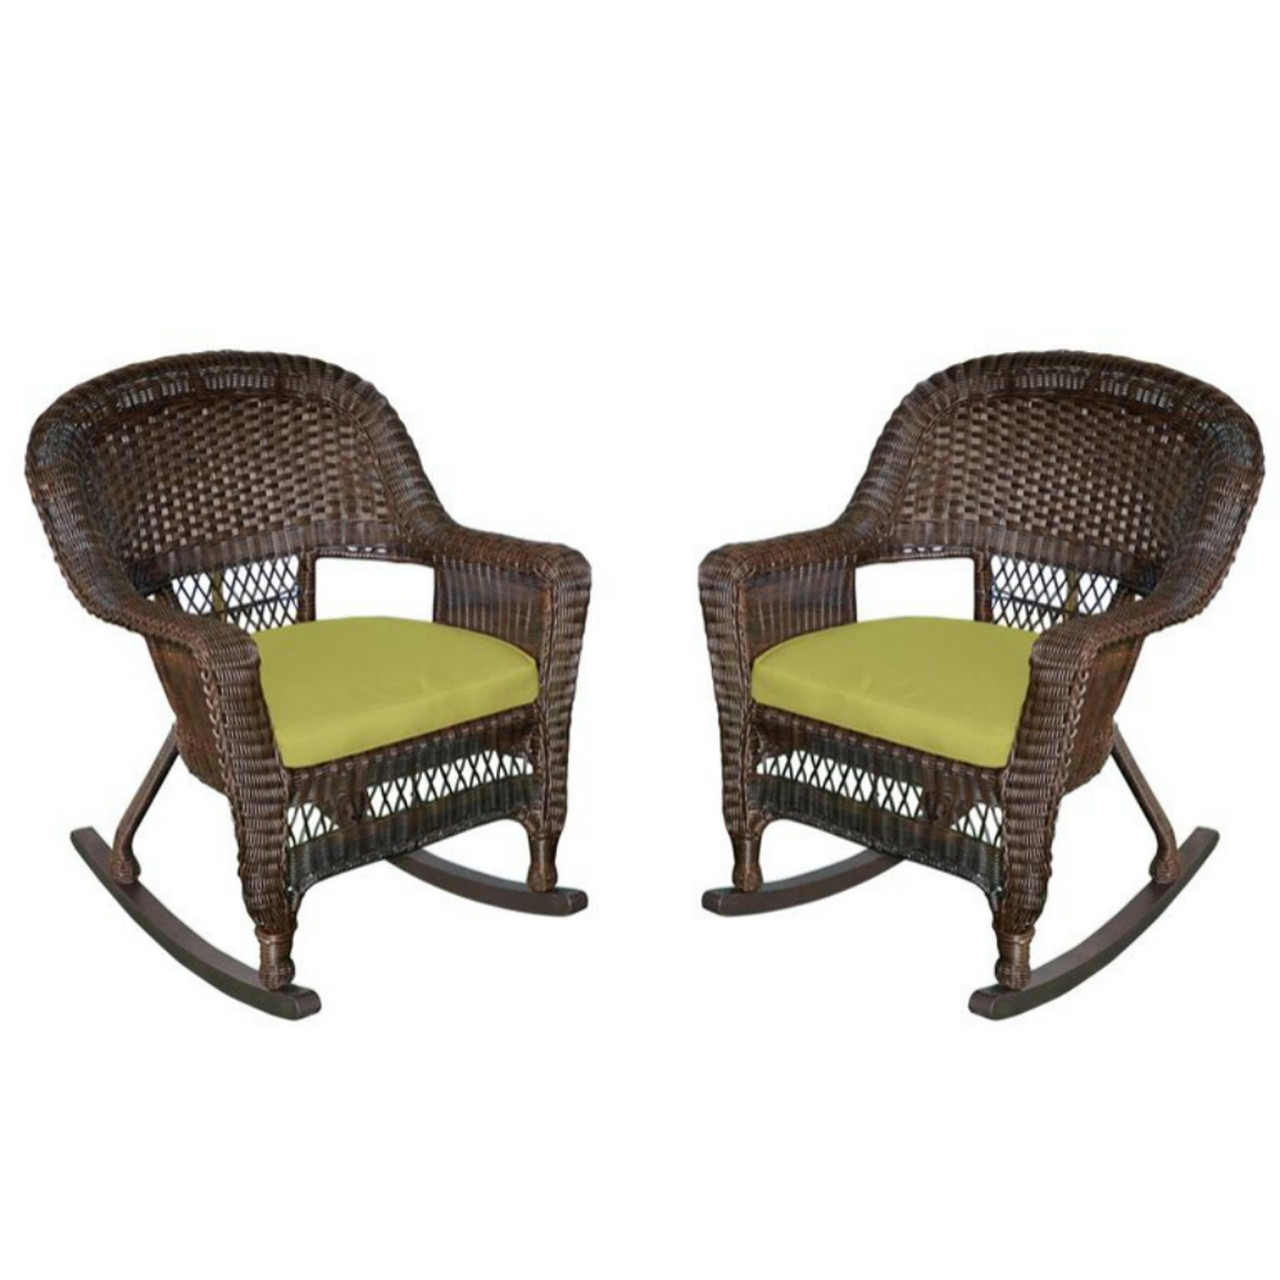 Patio Rocker Chairs Set Of 2 Espresso Brown Resin Wicker Outdoor Patio Rocker Chairs Green Cushions 31556116